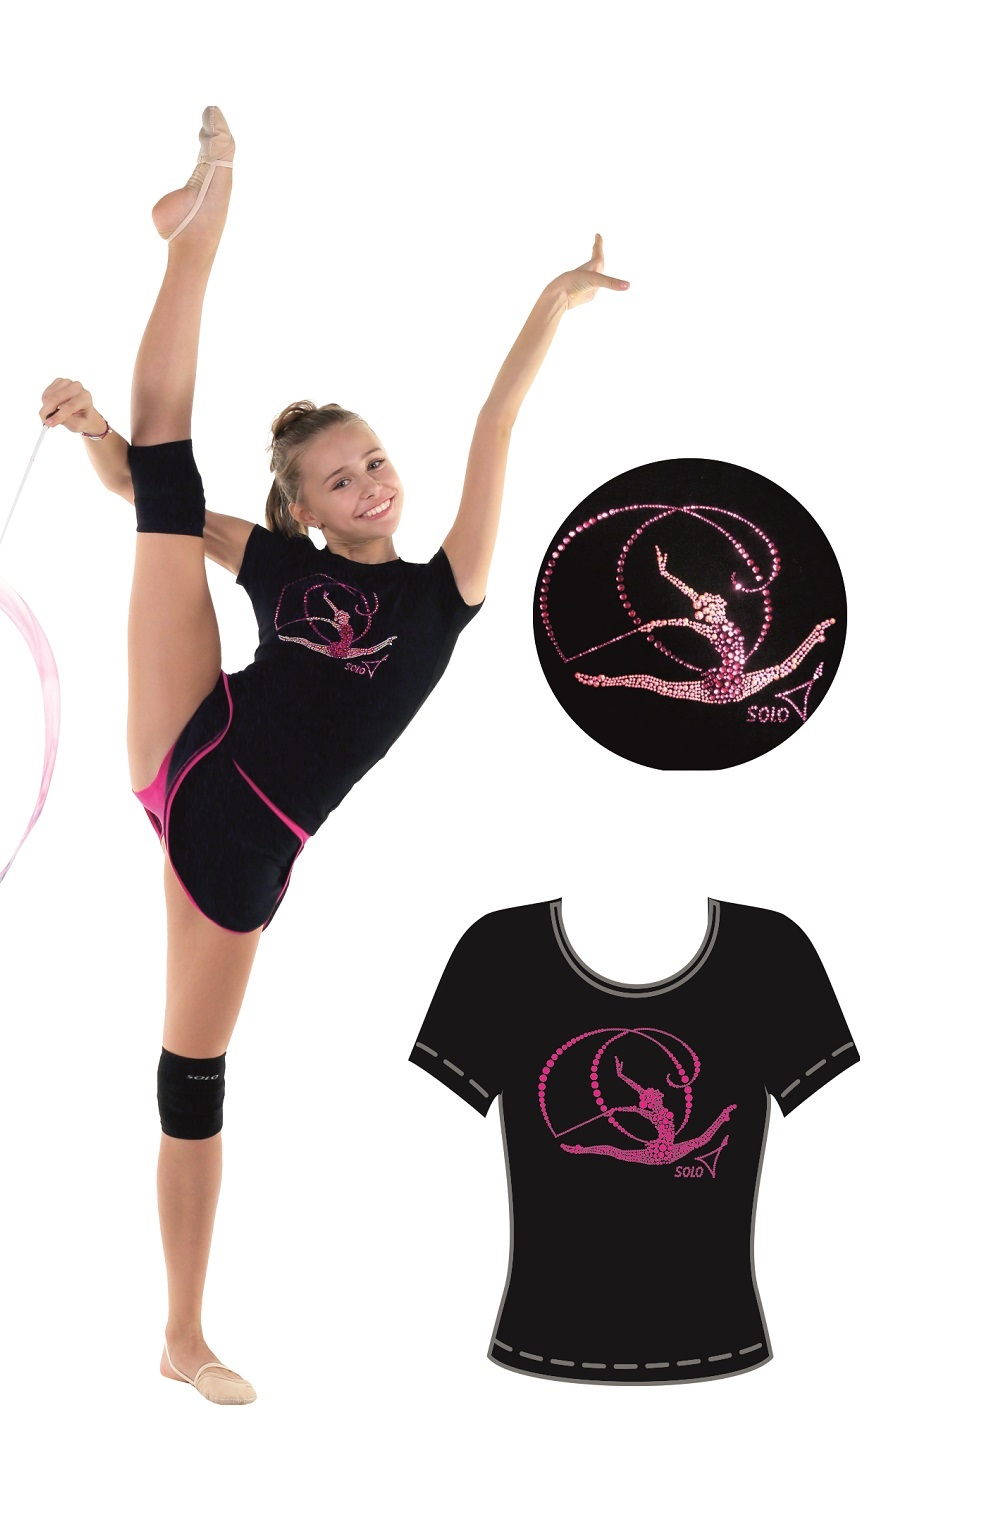 T-shirt with stones SOLO RG 650.18 Gymnast with ribbon